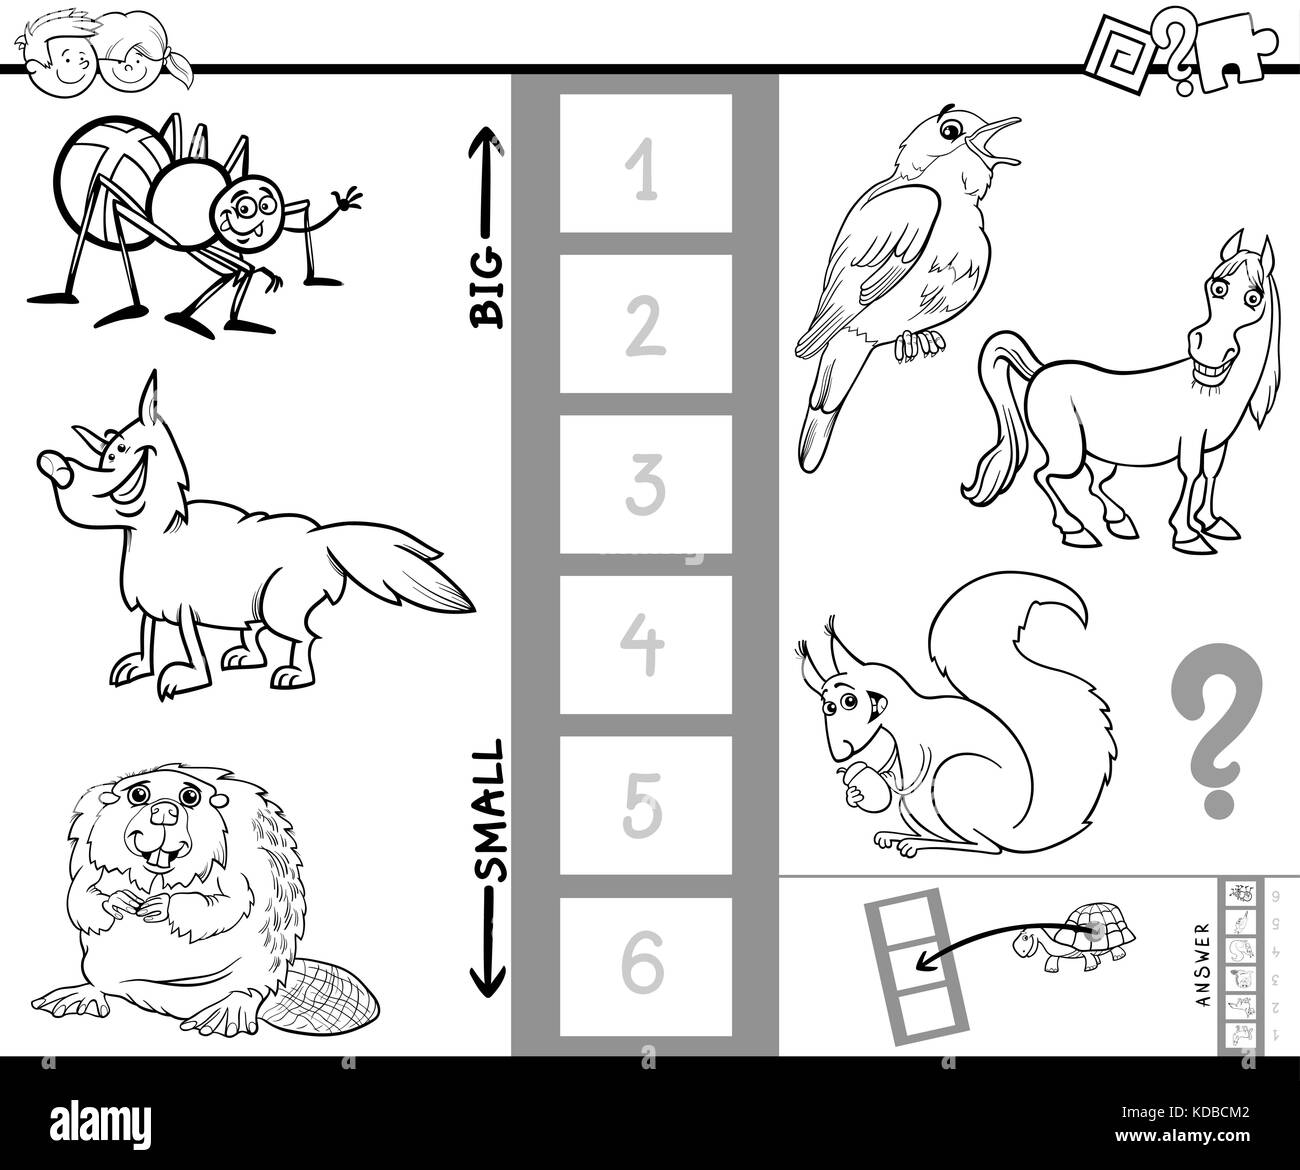 Black And White Cartoon Illustration Of Educational Game Finding The Biggest Smallest Animal Characters Coloring Book